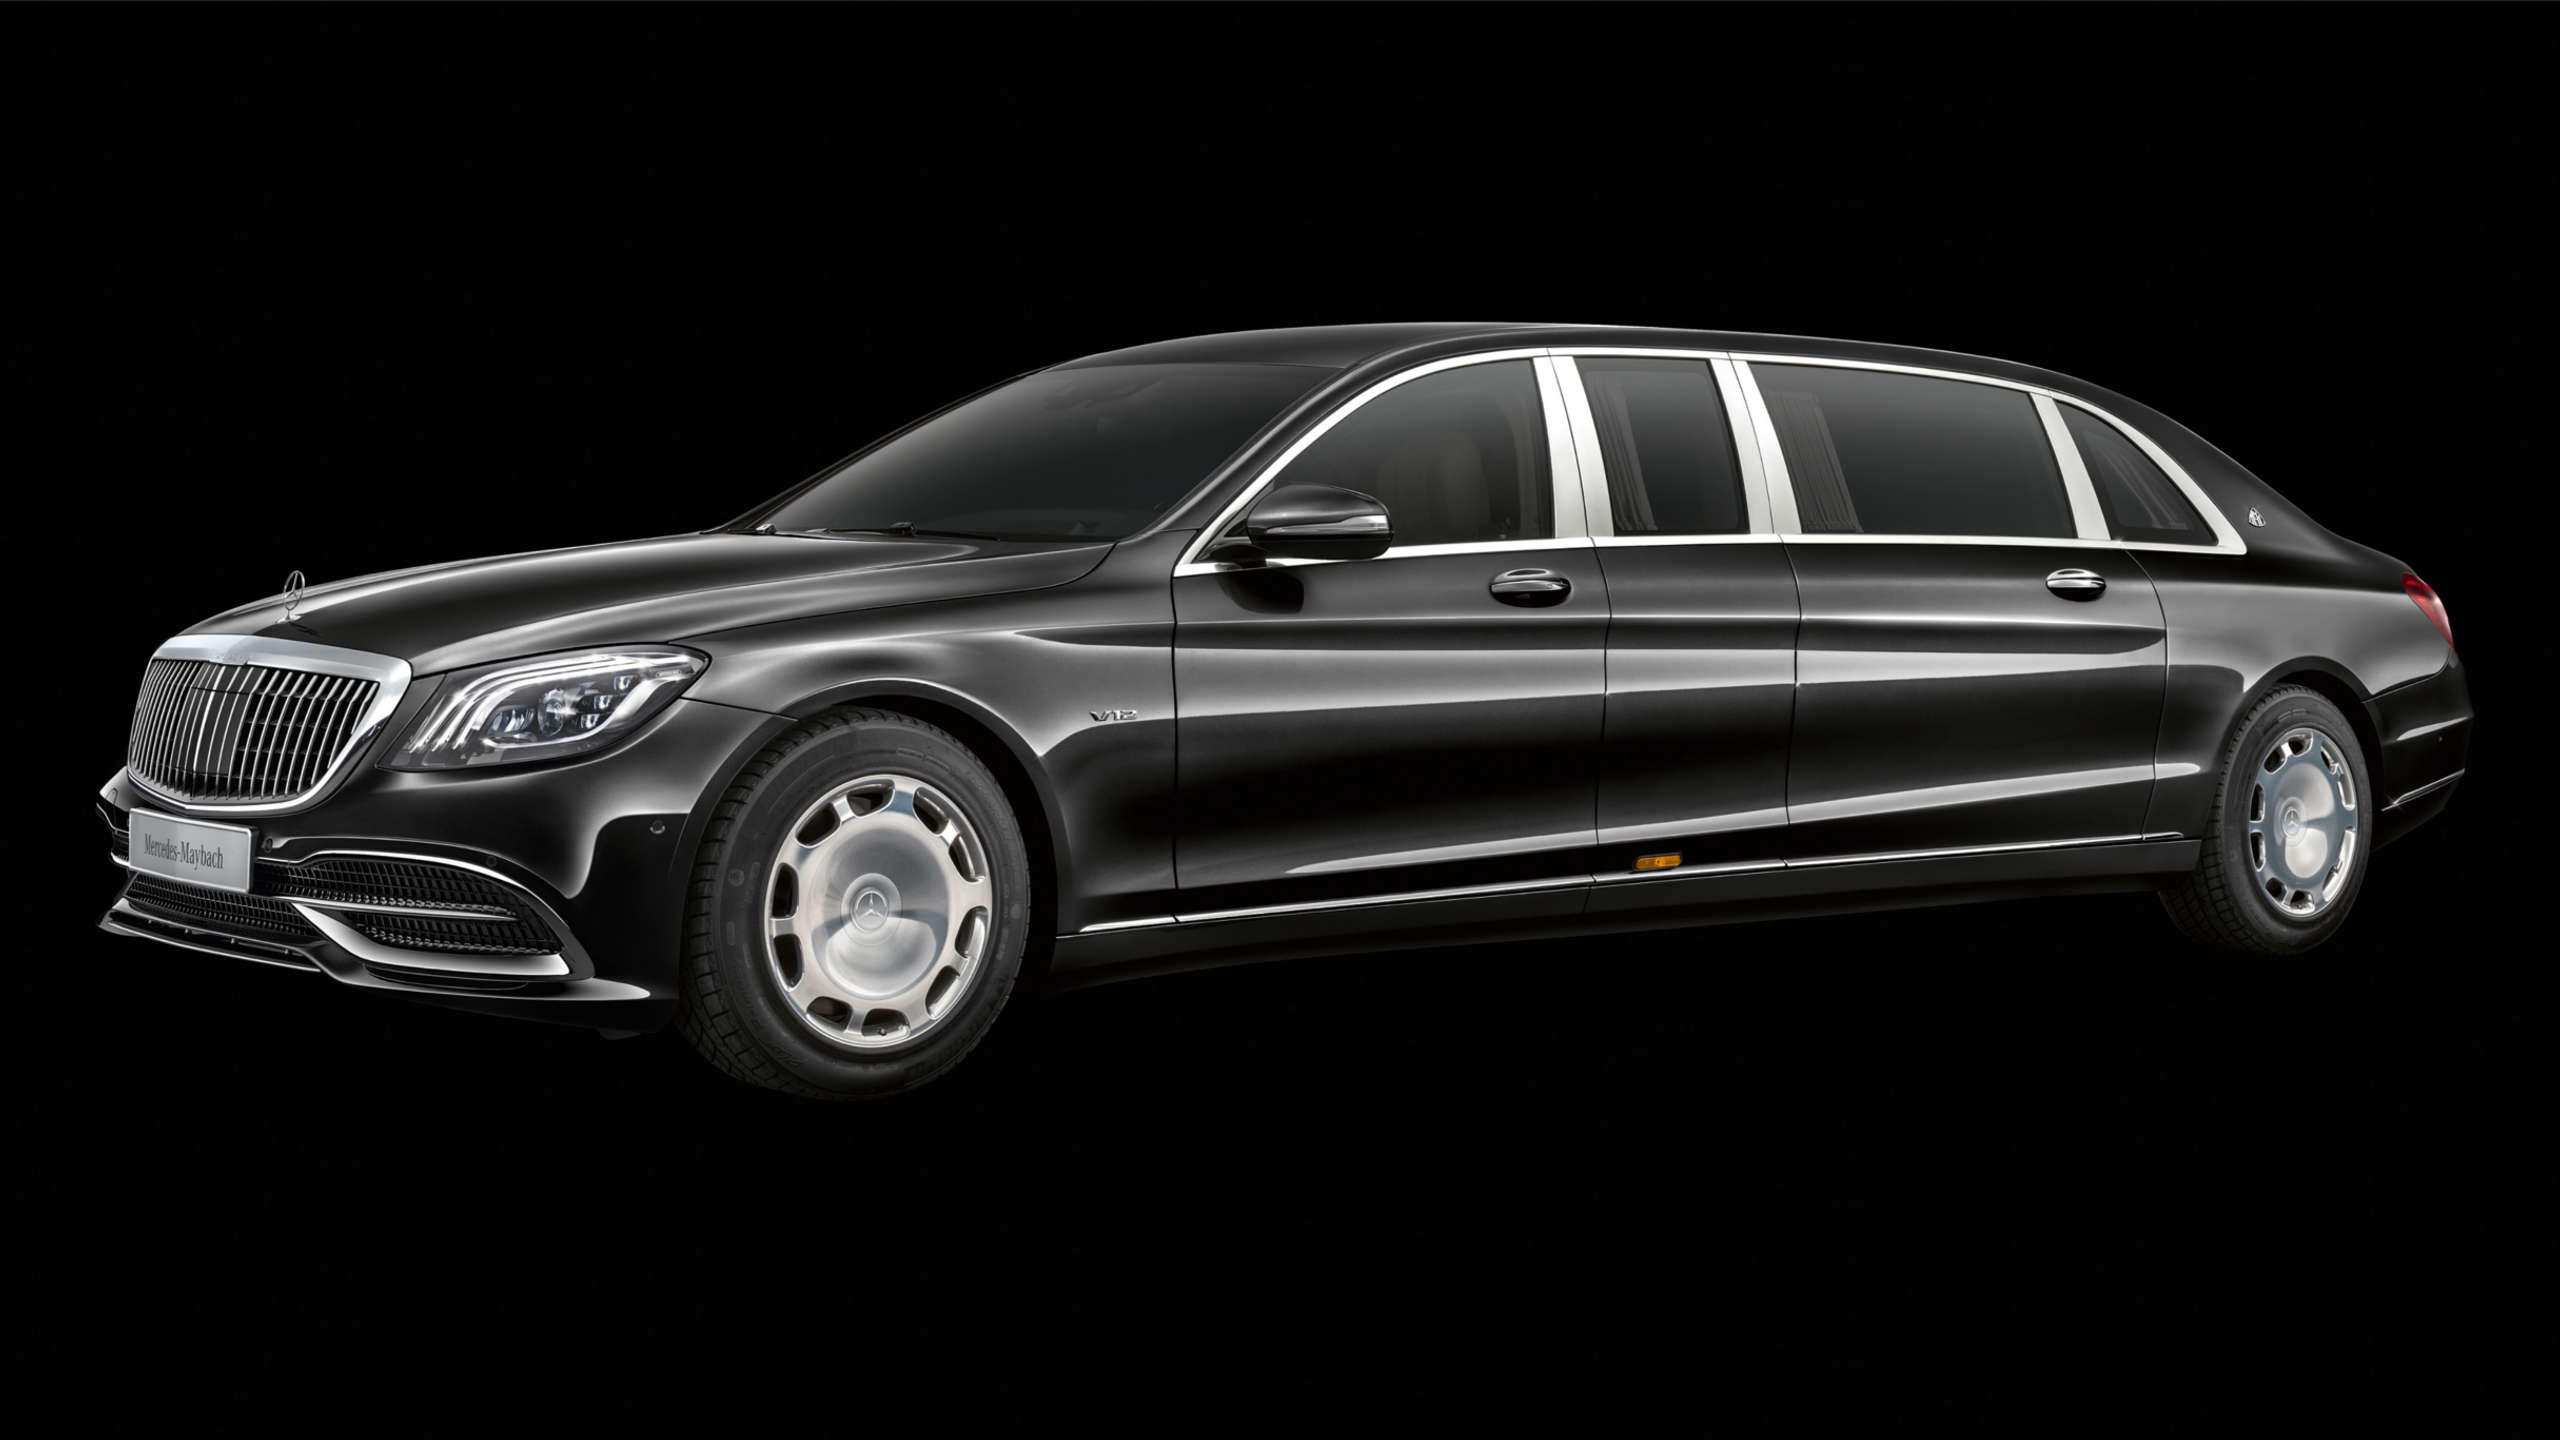 98 Best Review Mercedes S650 Maybach 2019 Spesification by Mercedes S650 Maybach 2019